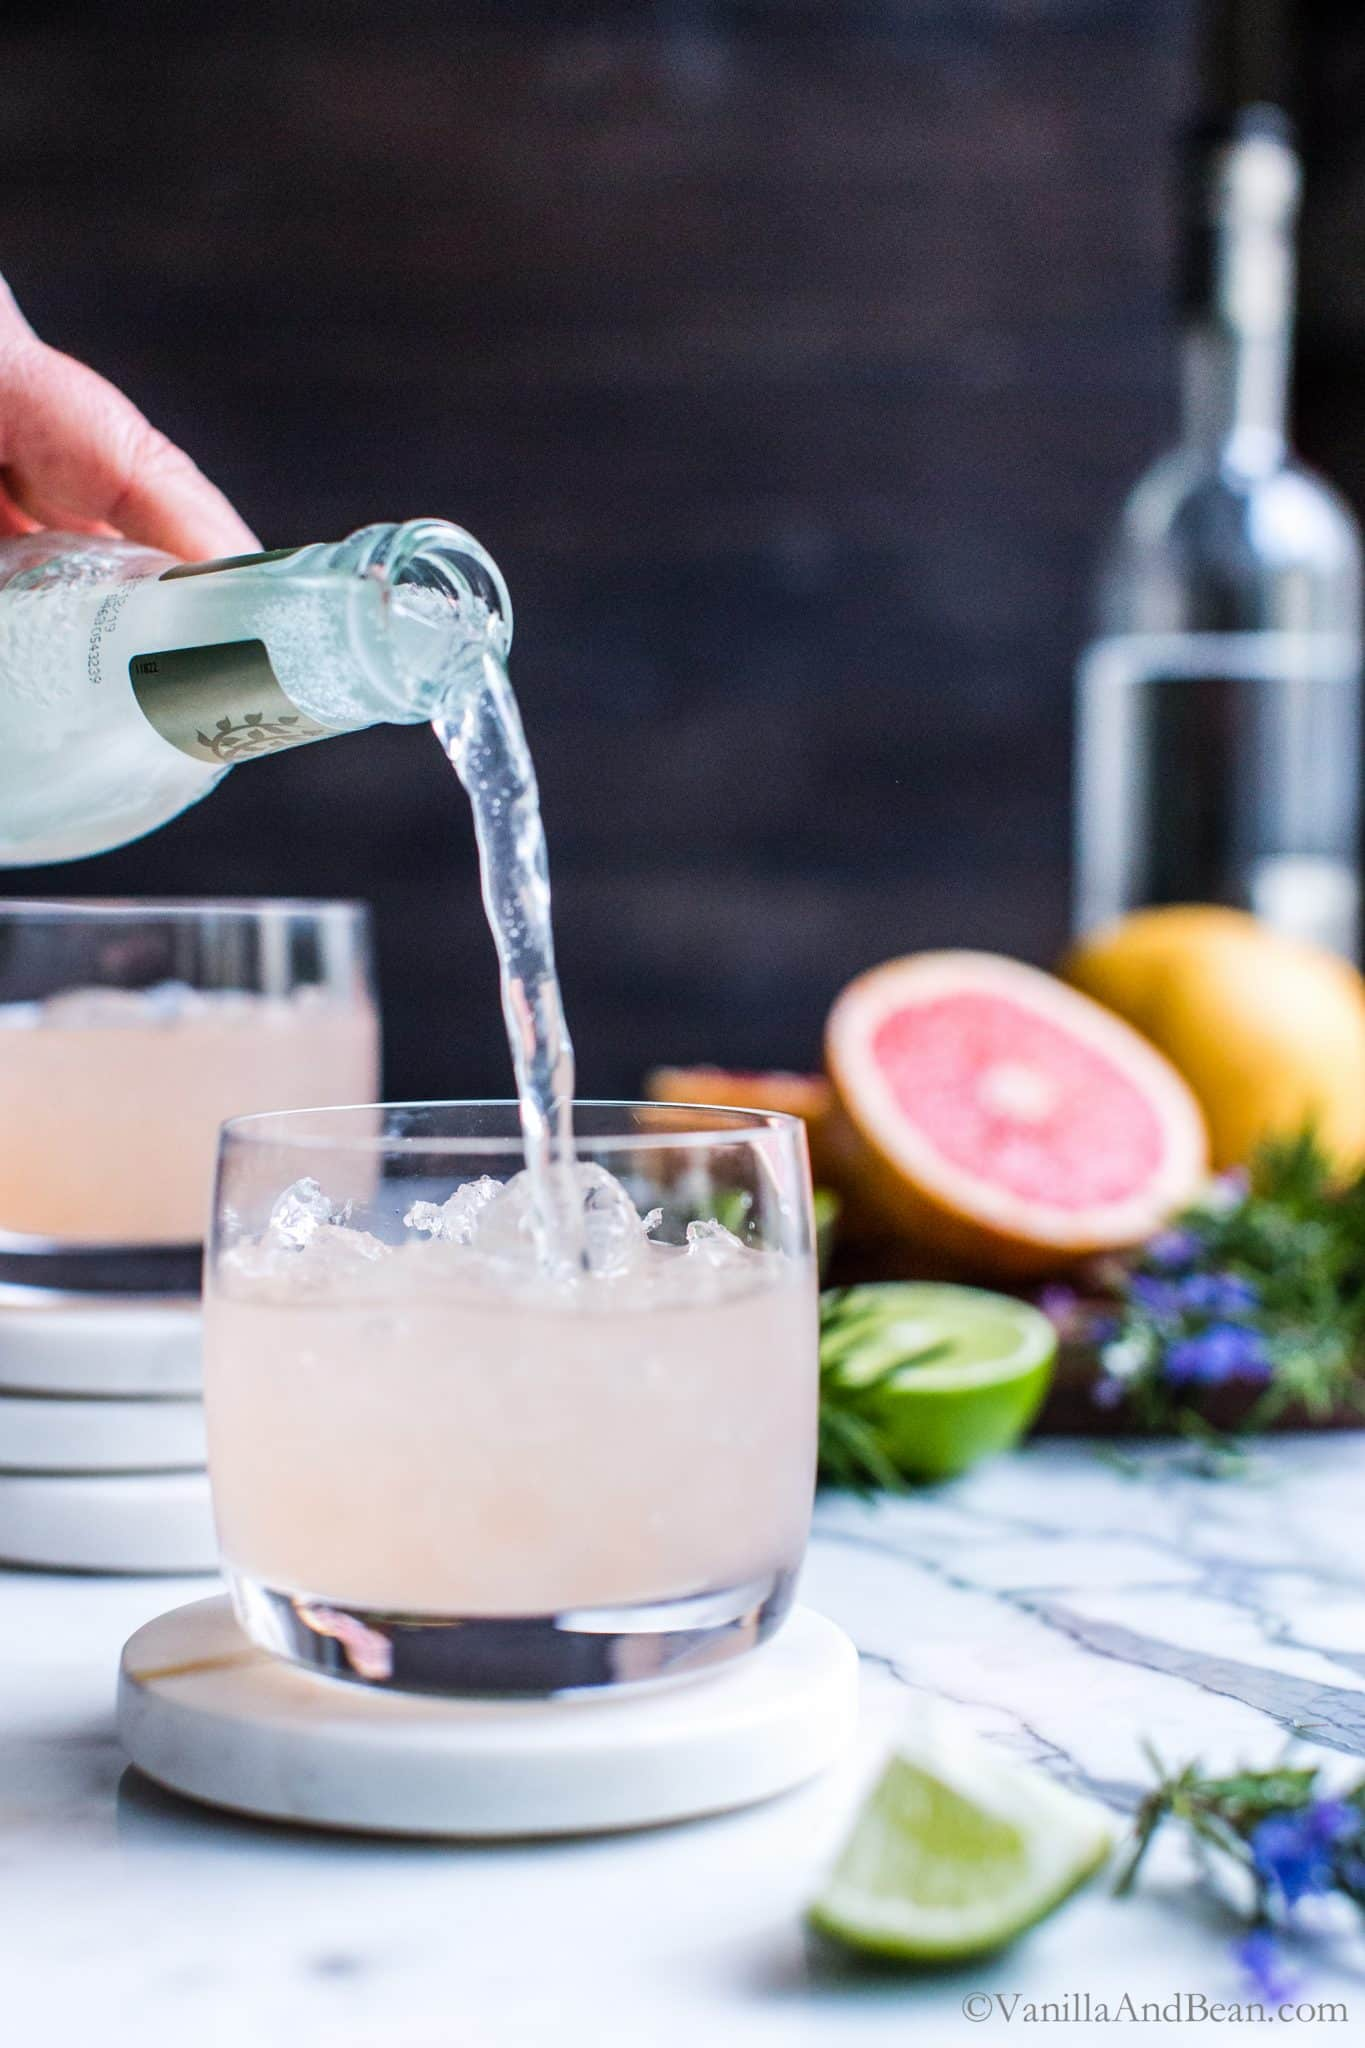 Pouring ginger beer into fresh grapefruit Moscow mules in a cocktail glass.